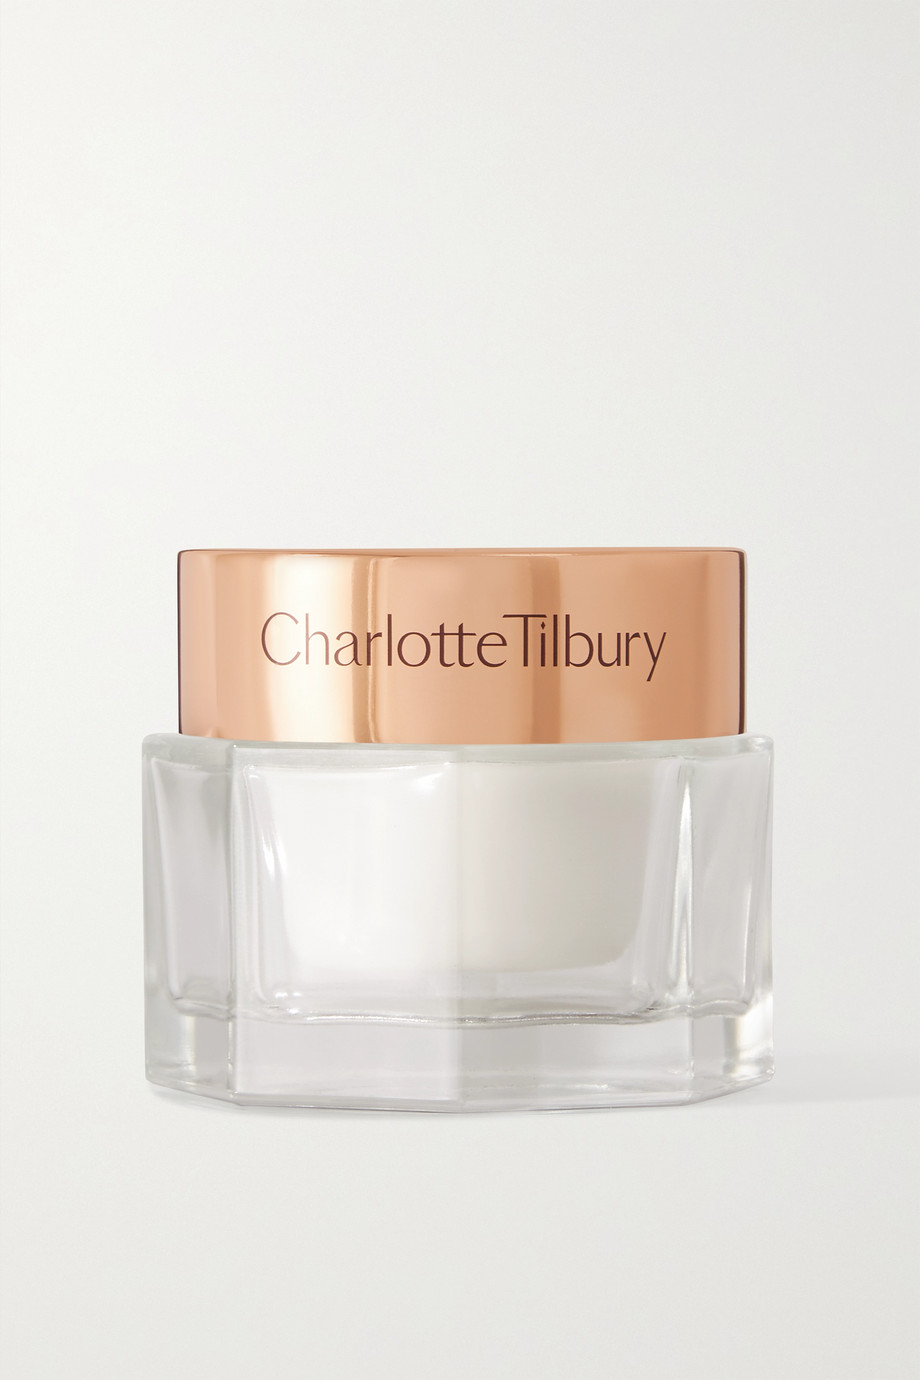 Charlotte Tilbury Charlotte's Magic Cream Moisturizer, 30ml